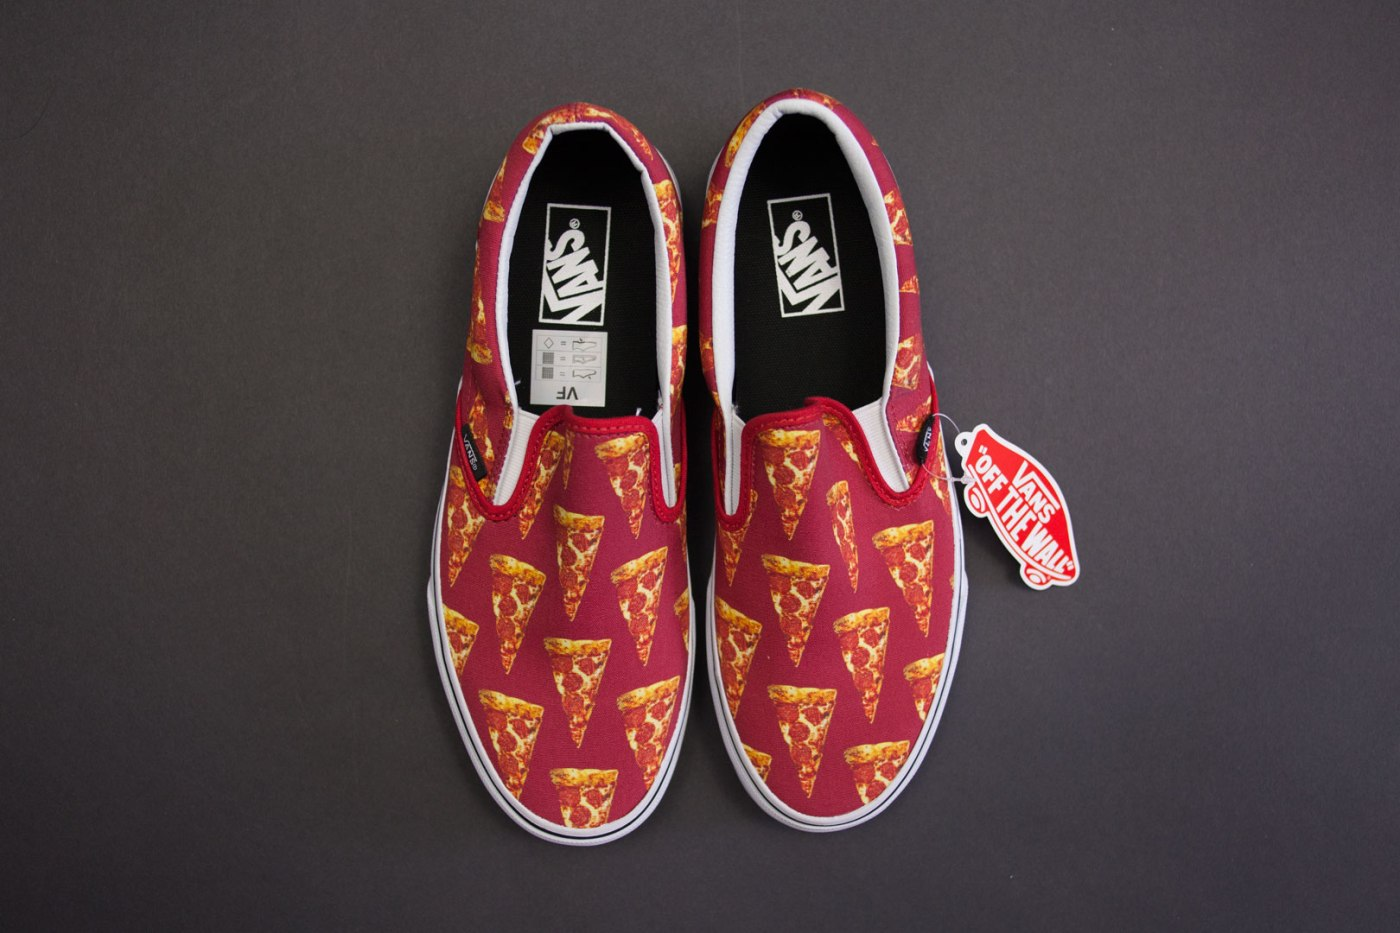 Vans Mars Red/Pizza Late Night Slip-On